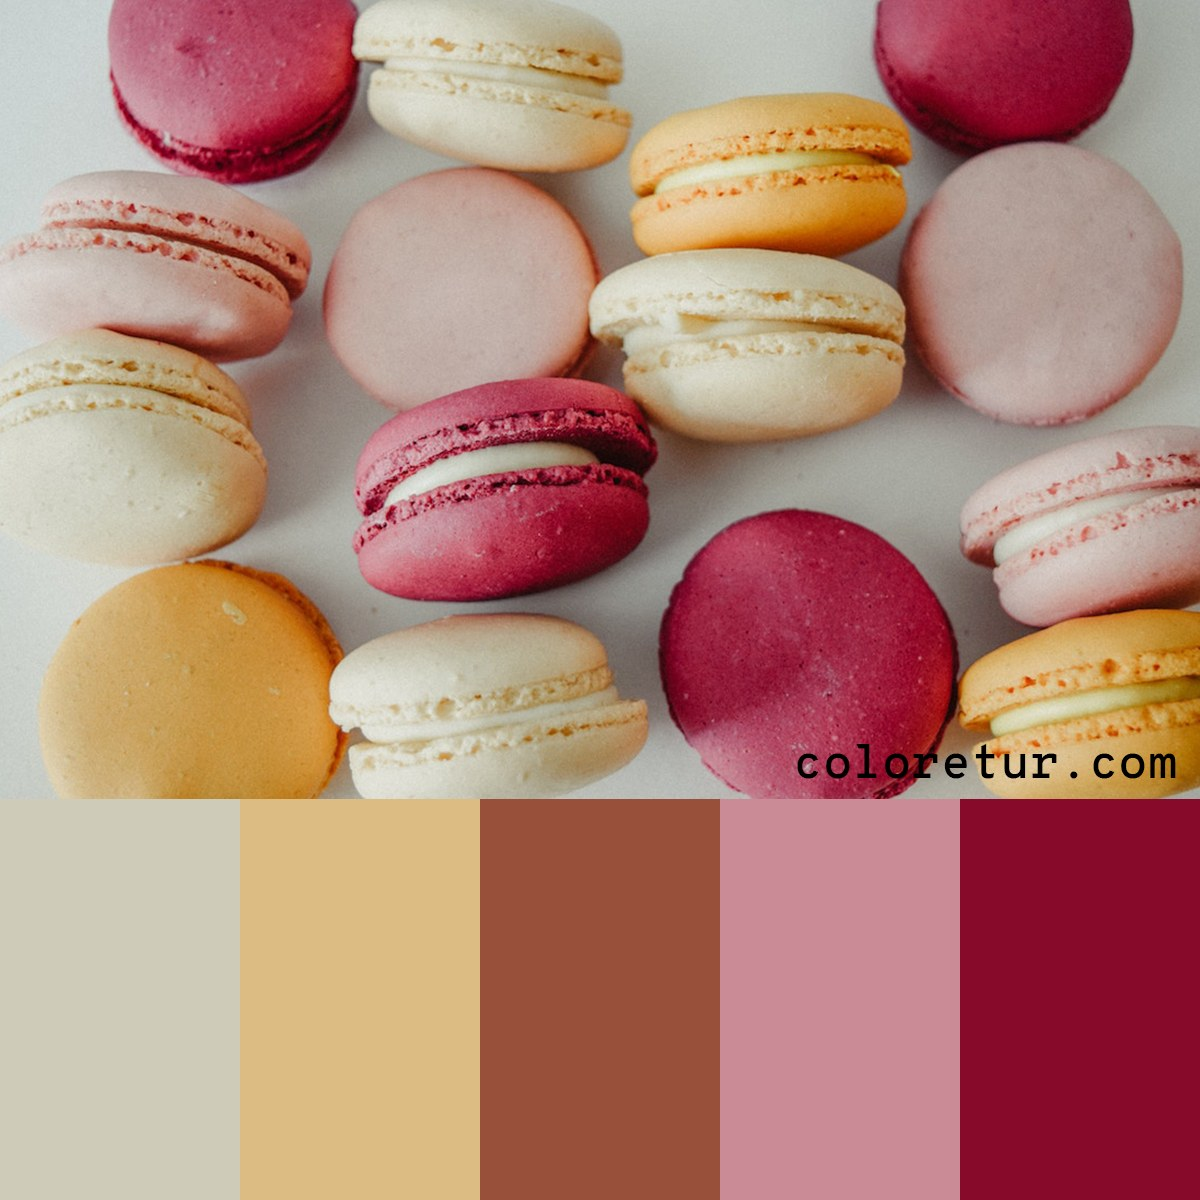 A warm palette composed from delicious, delicate macaroons.